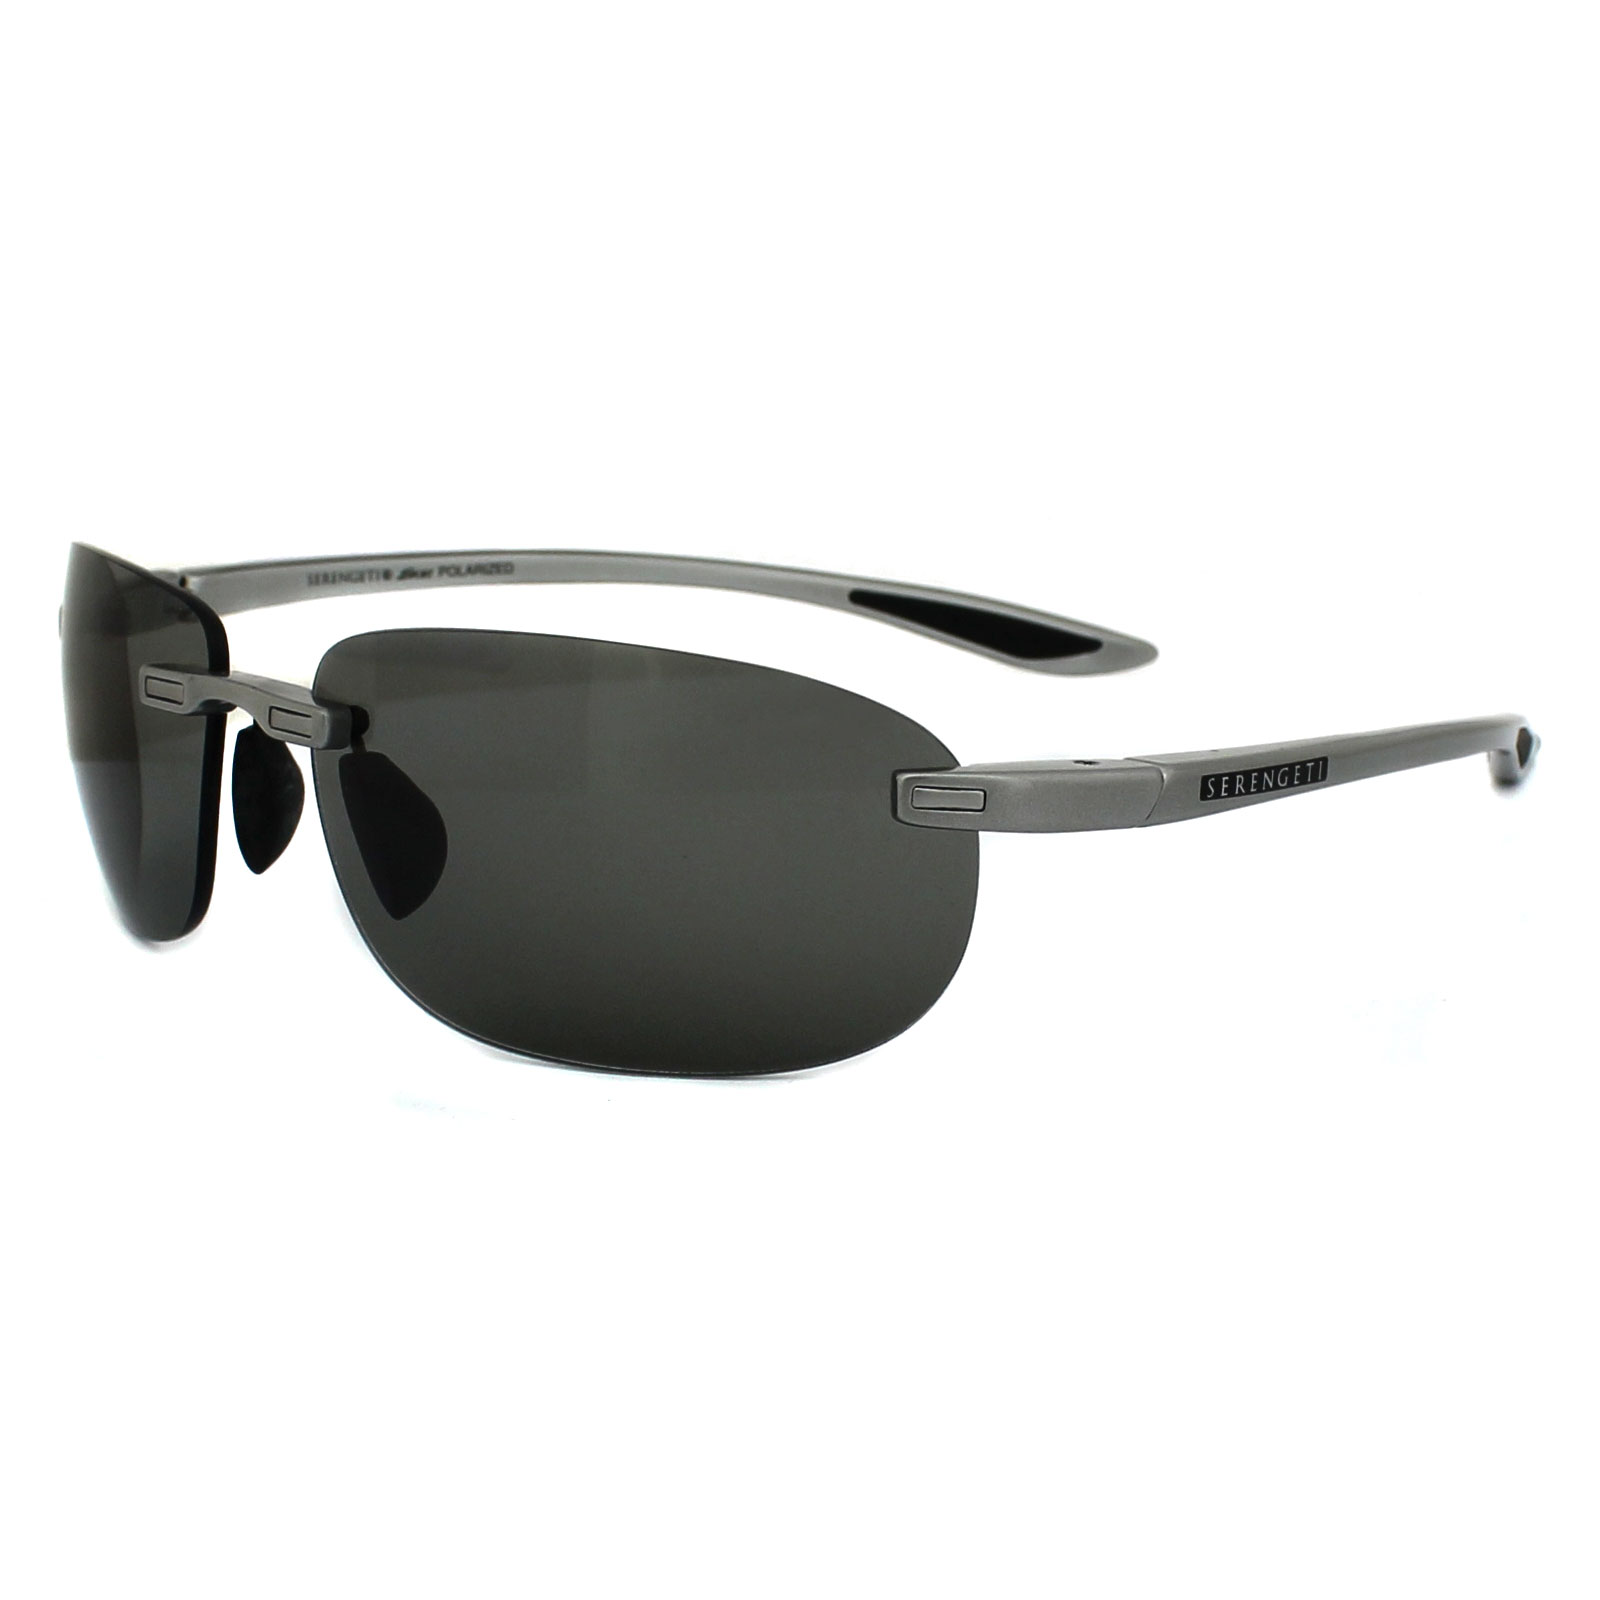 4cf21d745430 Sentinel Serengeti Sunglasses Cielo 7530 Aluminium CPG Cool Photo Grey  Polarized